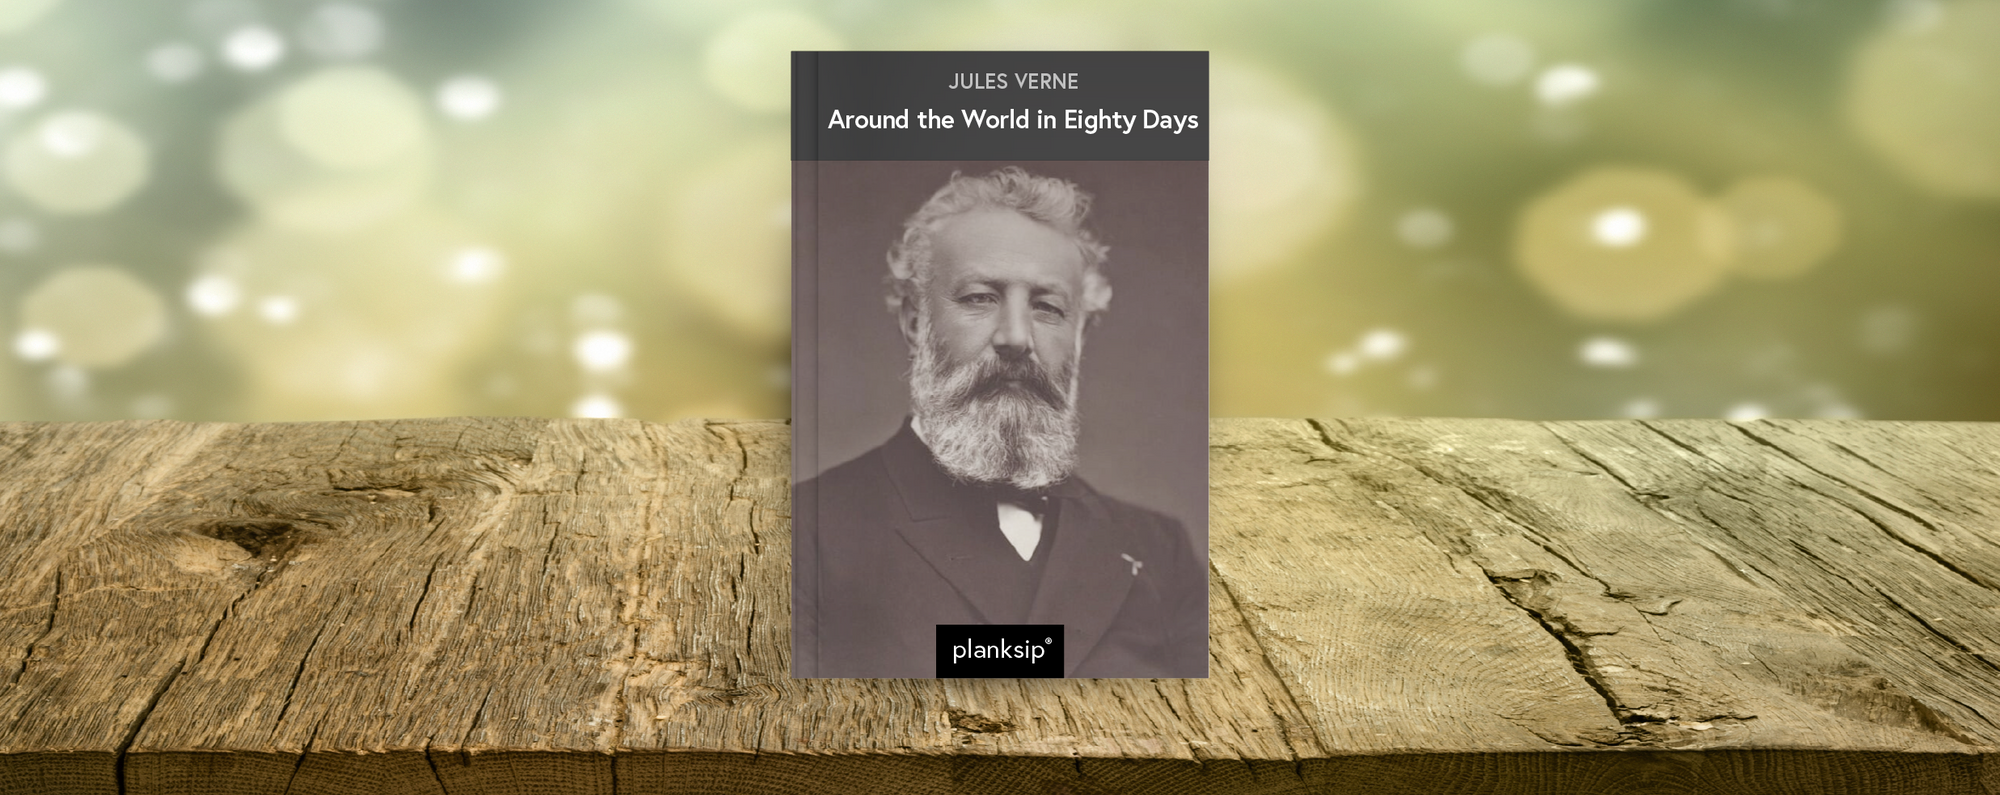 Around the World in Eighty Days by Jules Verne (1828-1905). Published by planksip